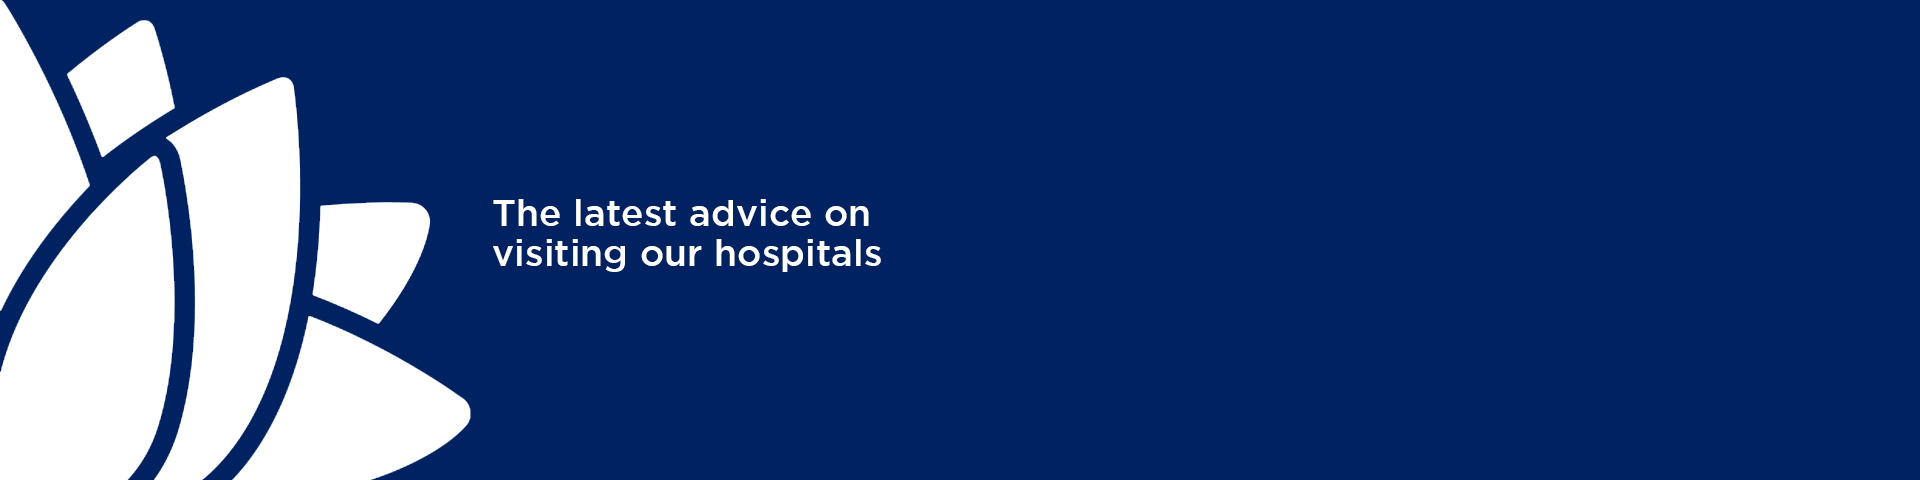 The latest advice on visiting our hospitals